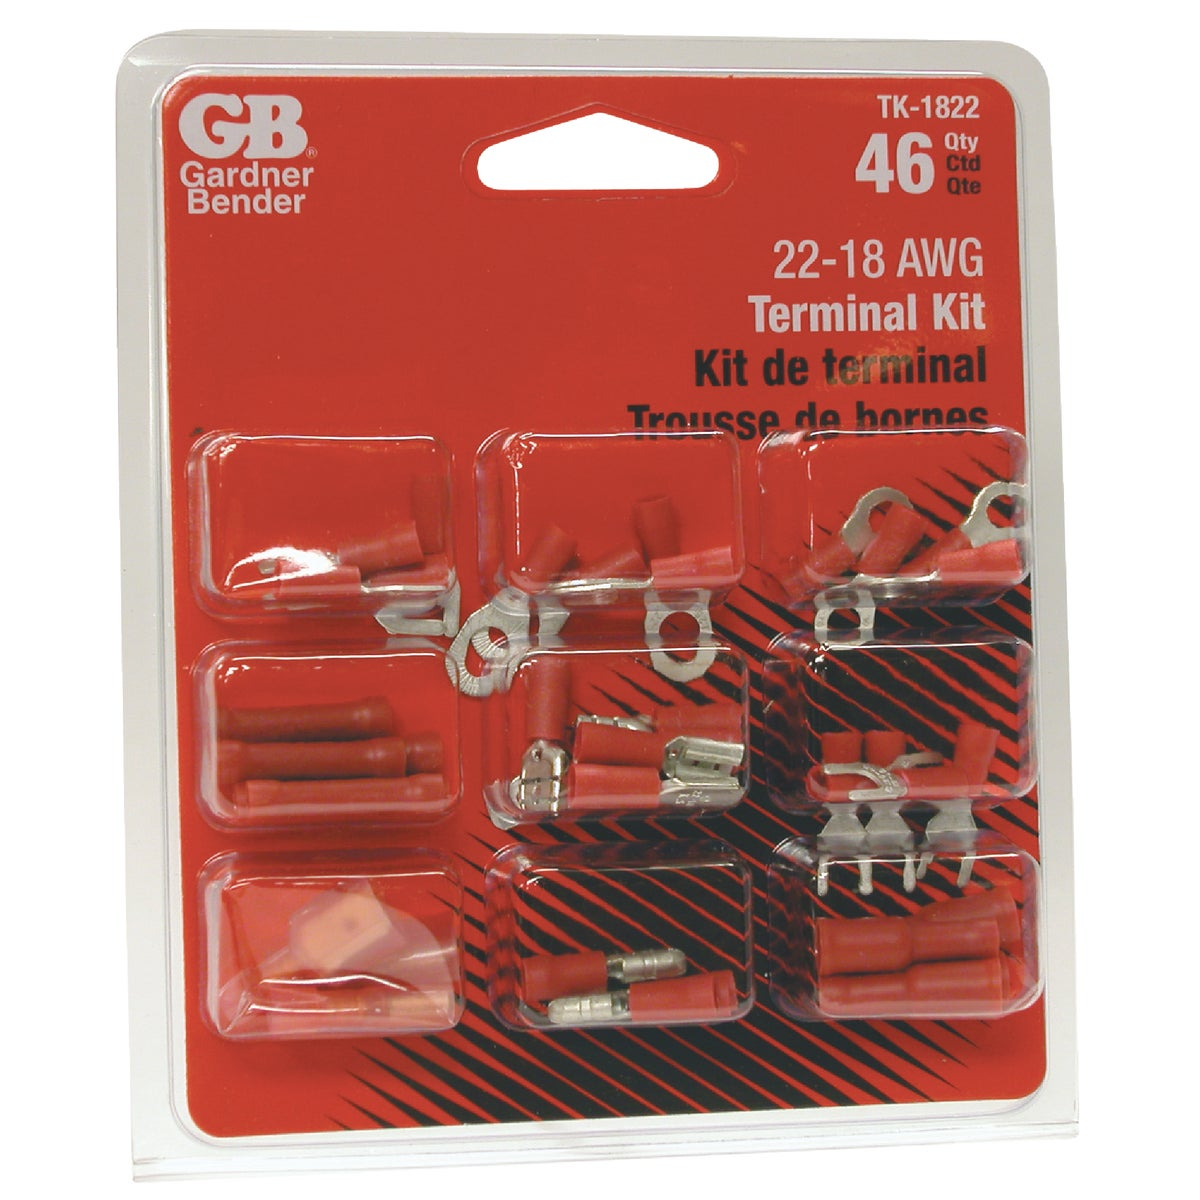 GB Electrical 18-22 AWG TERMINAL KIT TK-1822